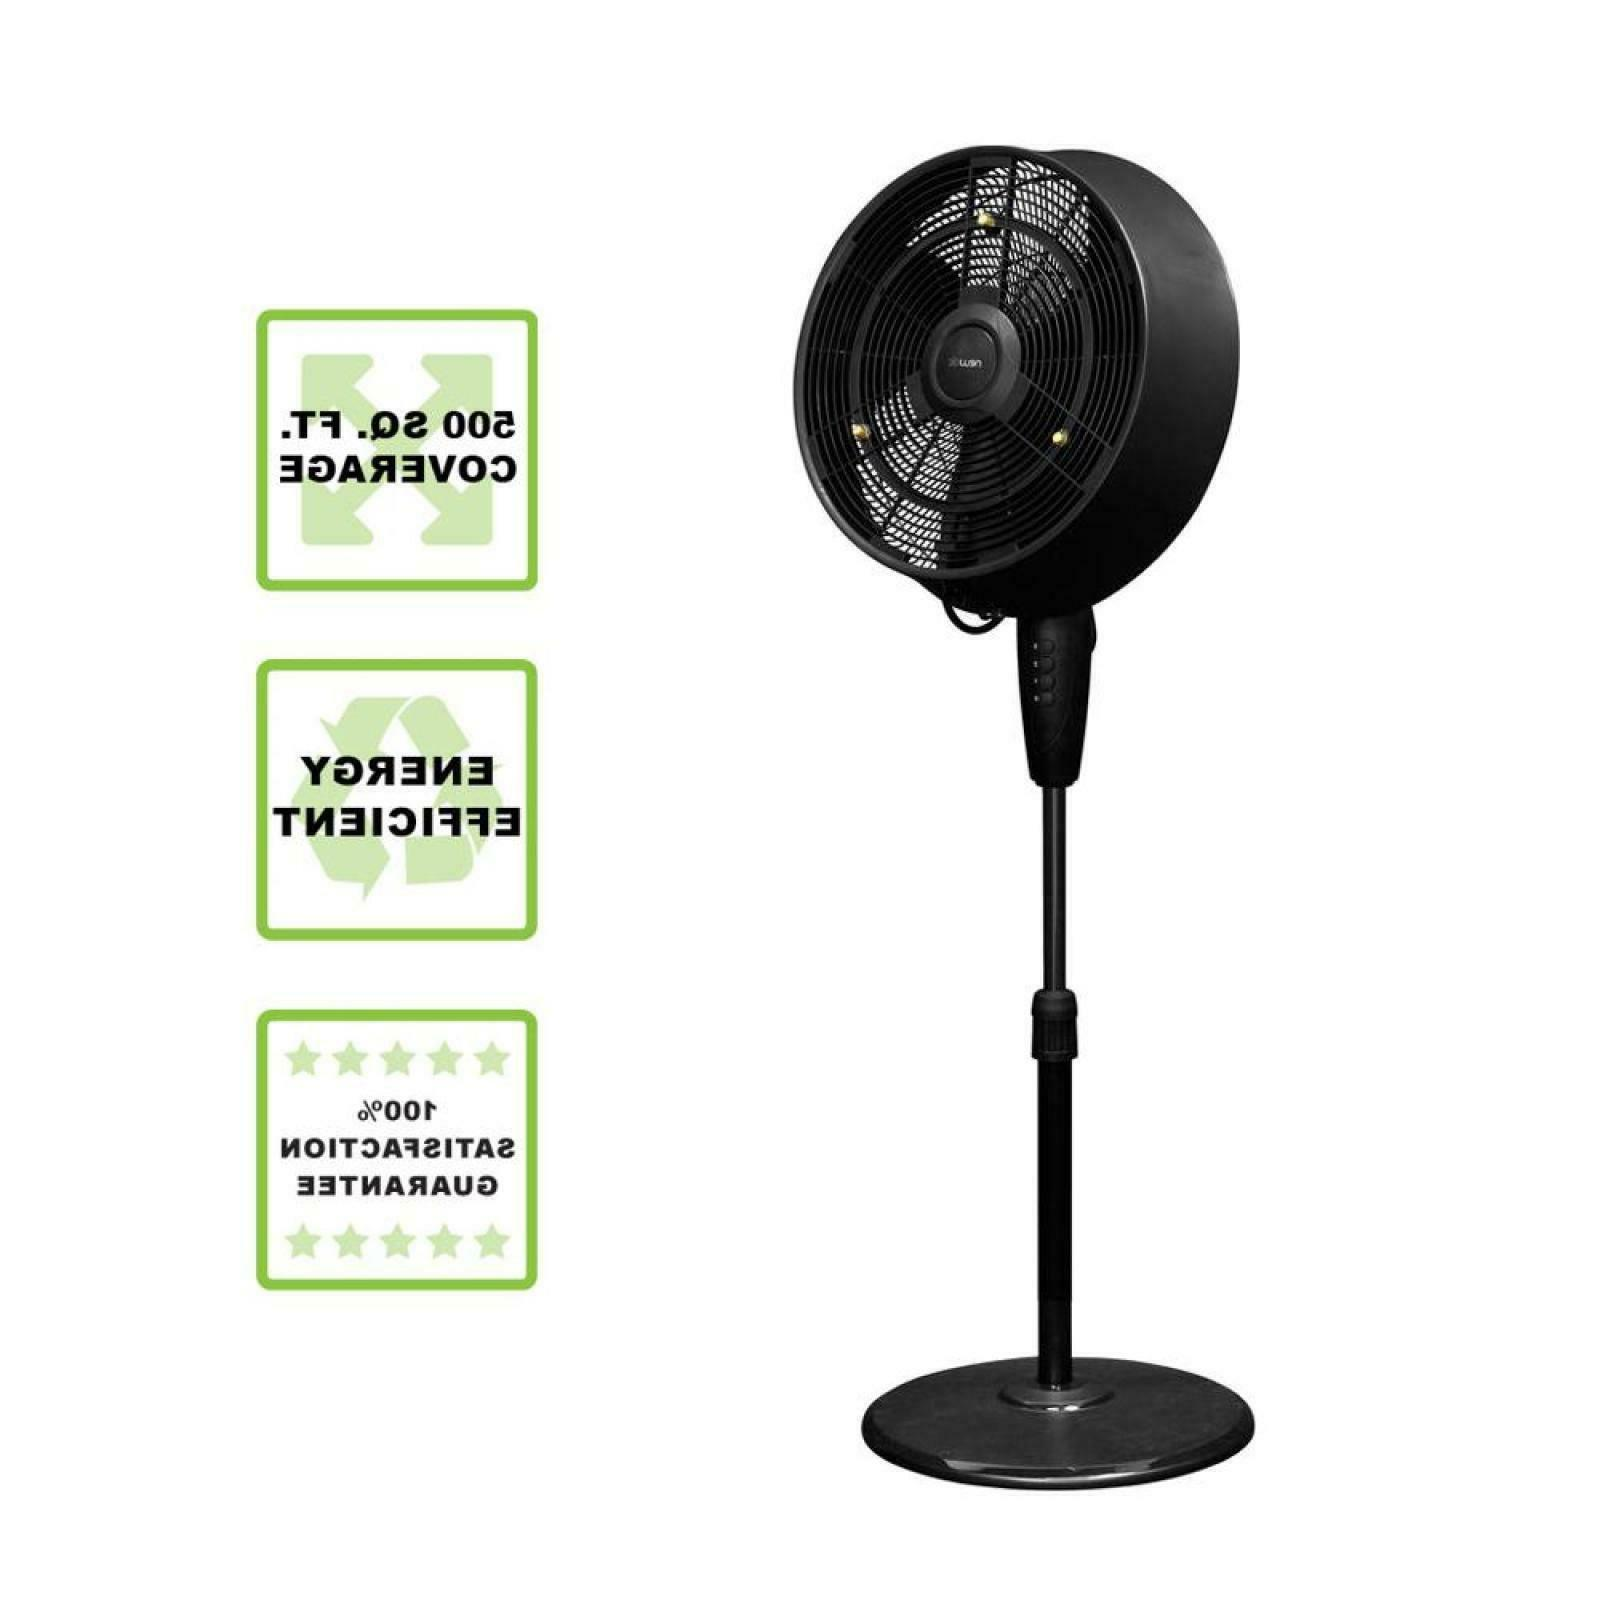 outdoor misting fan powerful misters cover up